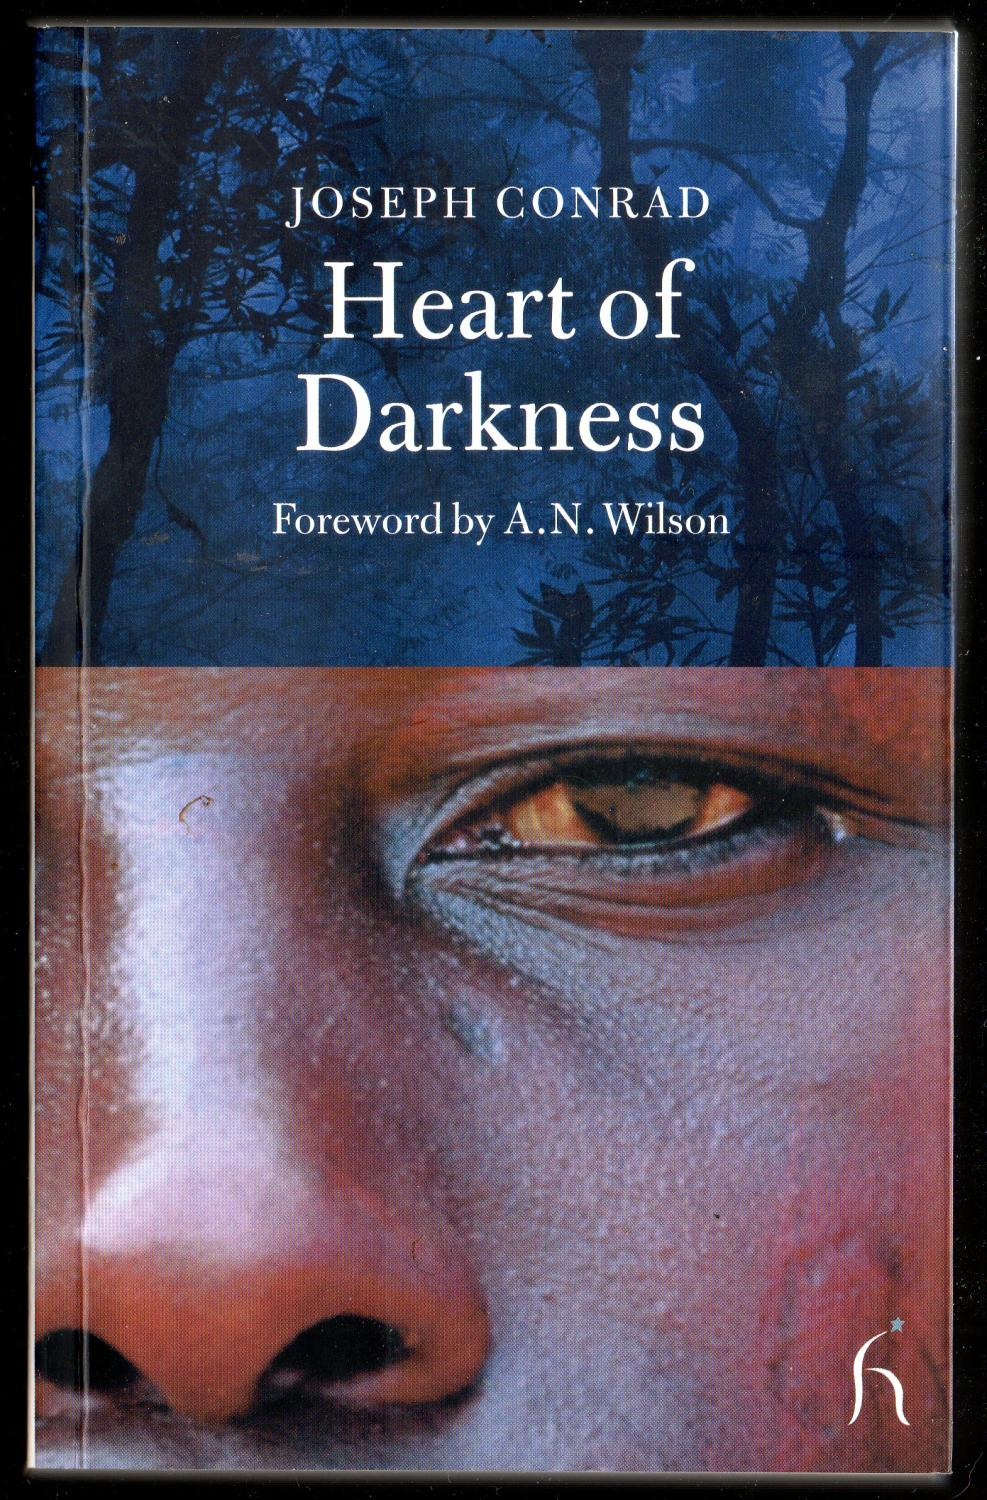 Heart of Darkness with the Congo Diary and Up - River - Book - Joseph Conrad - Foreword By A. N. Wilson Edited By Zdzislaw Najder